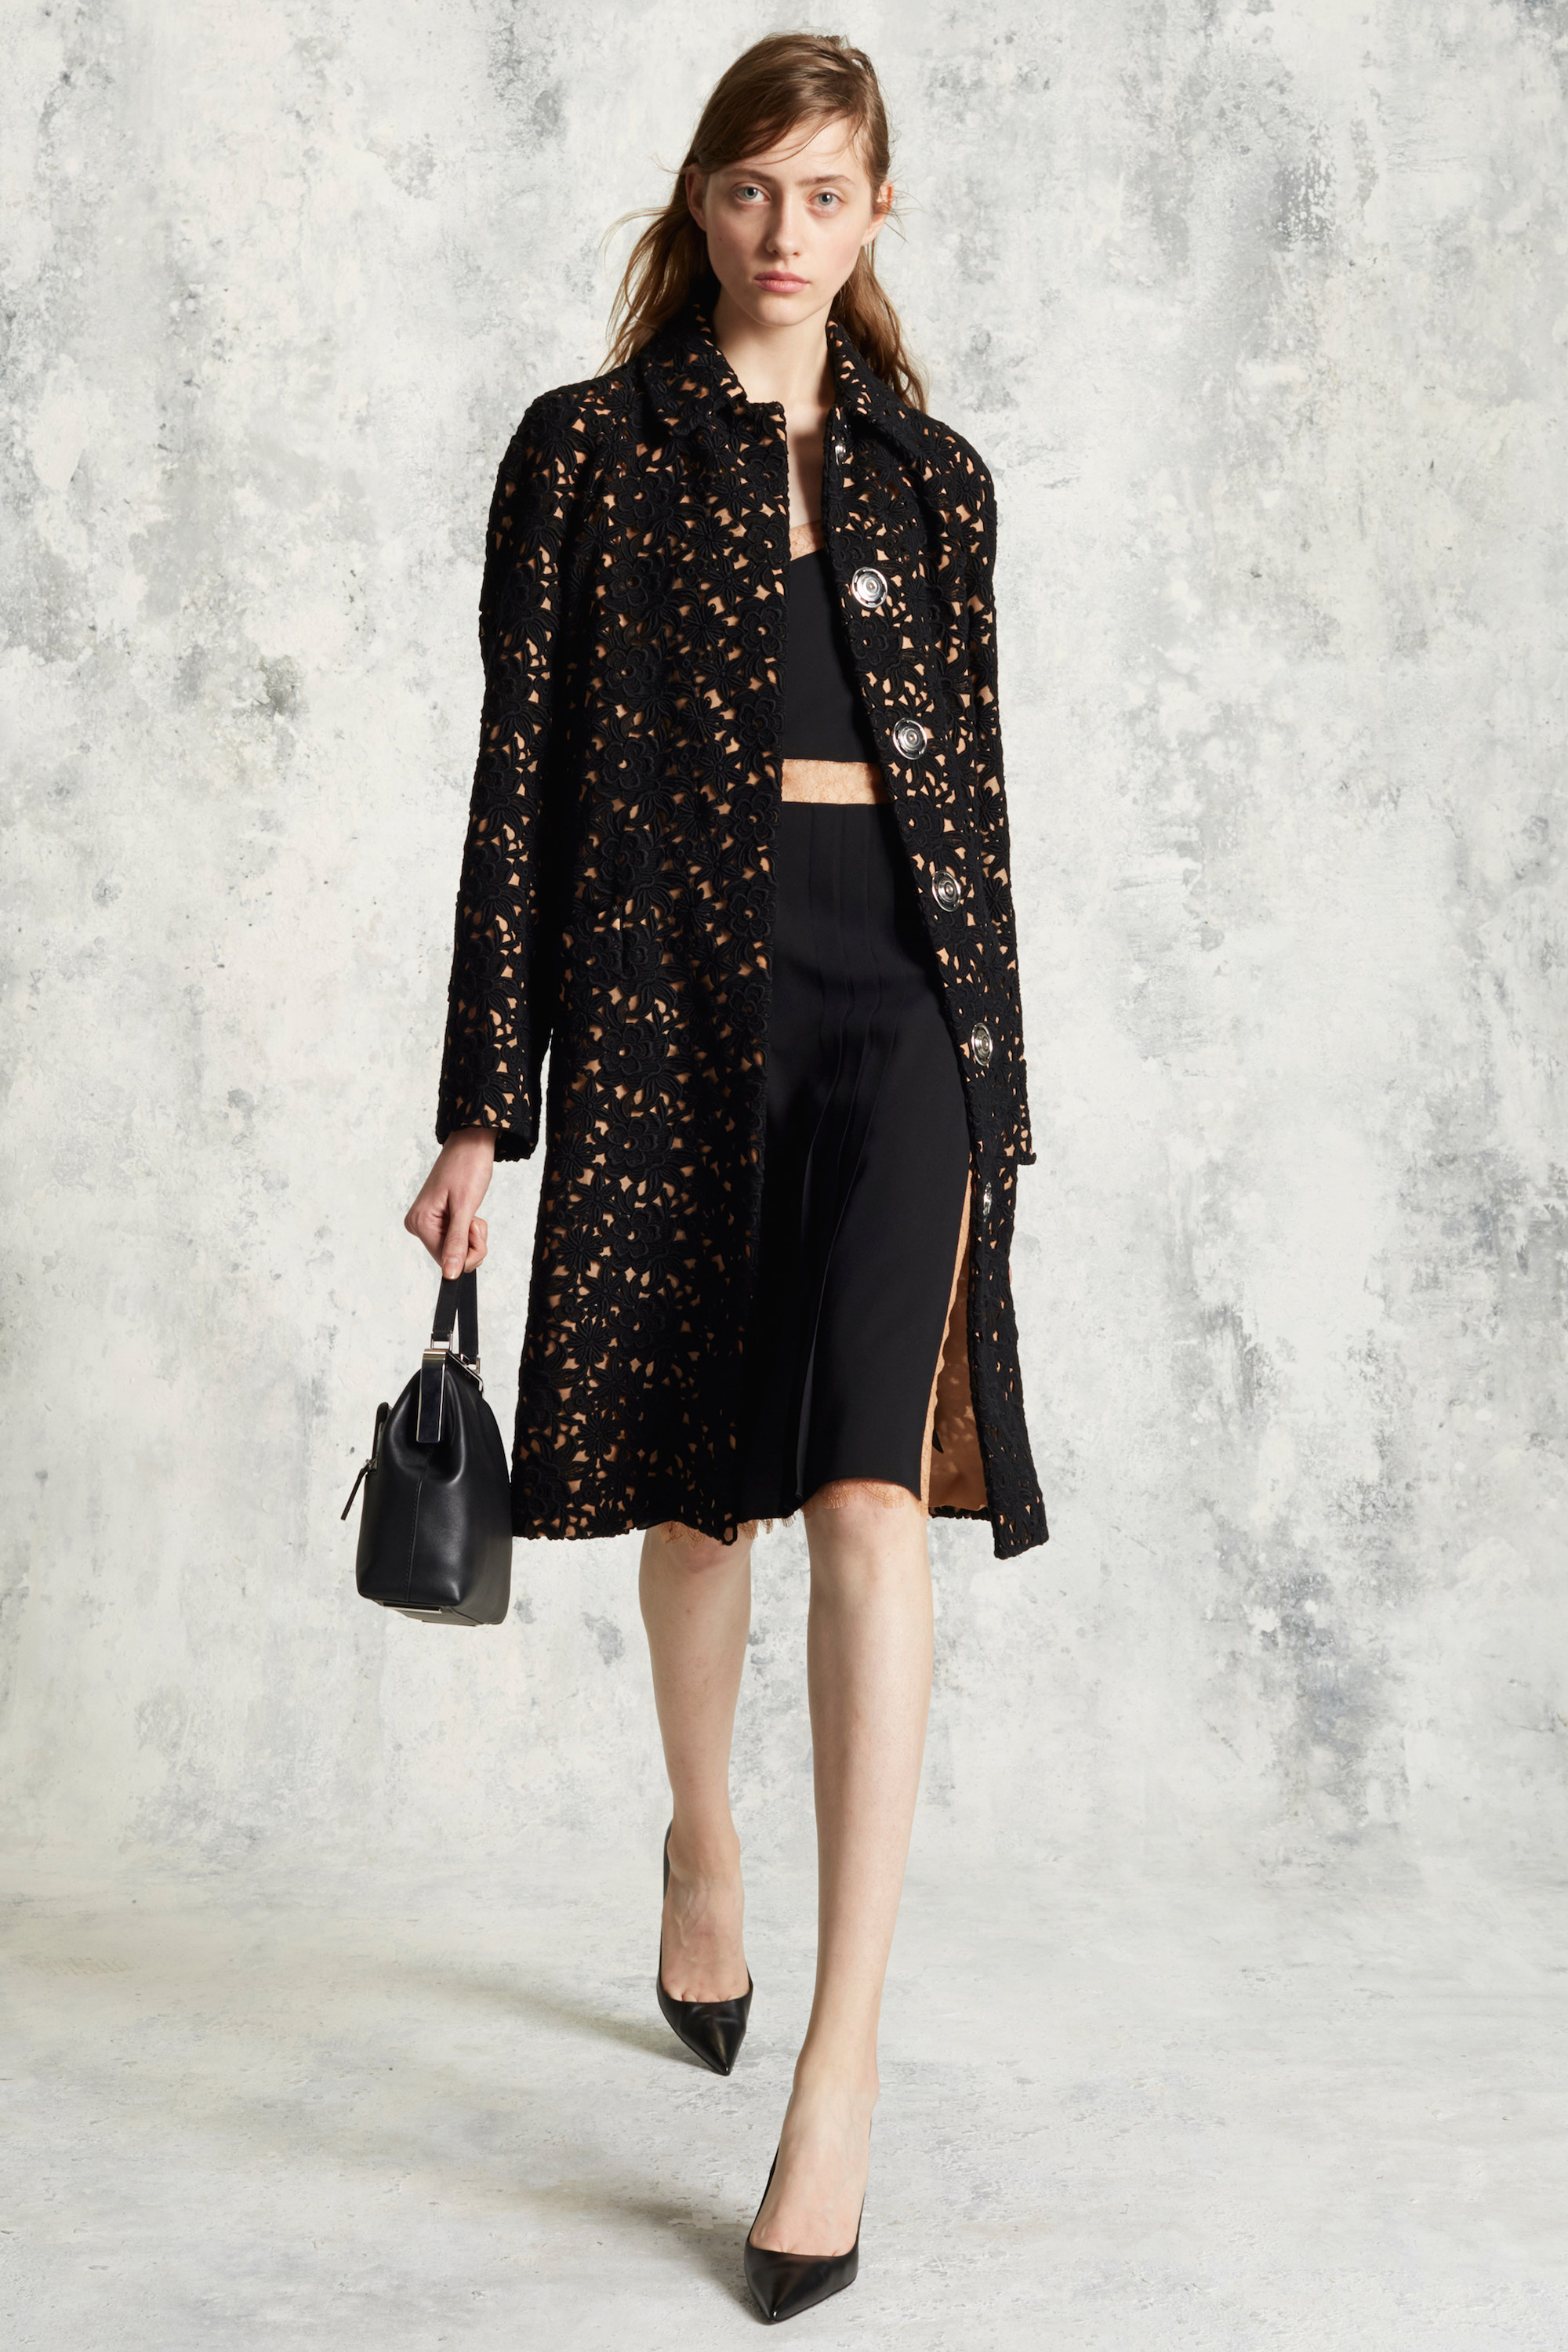 michael kors pre fall 2016 lookbook 26 lia